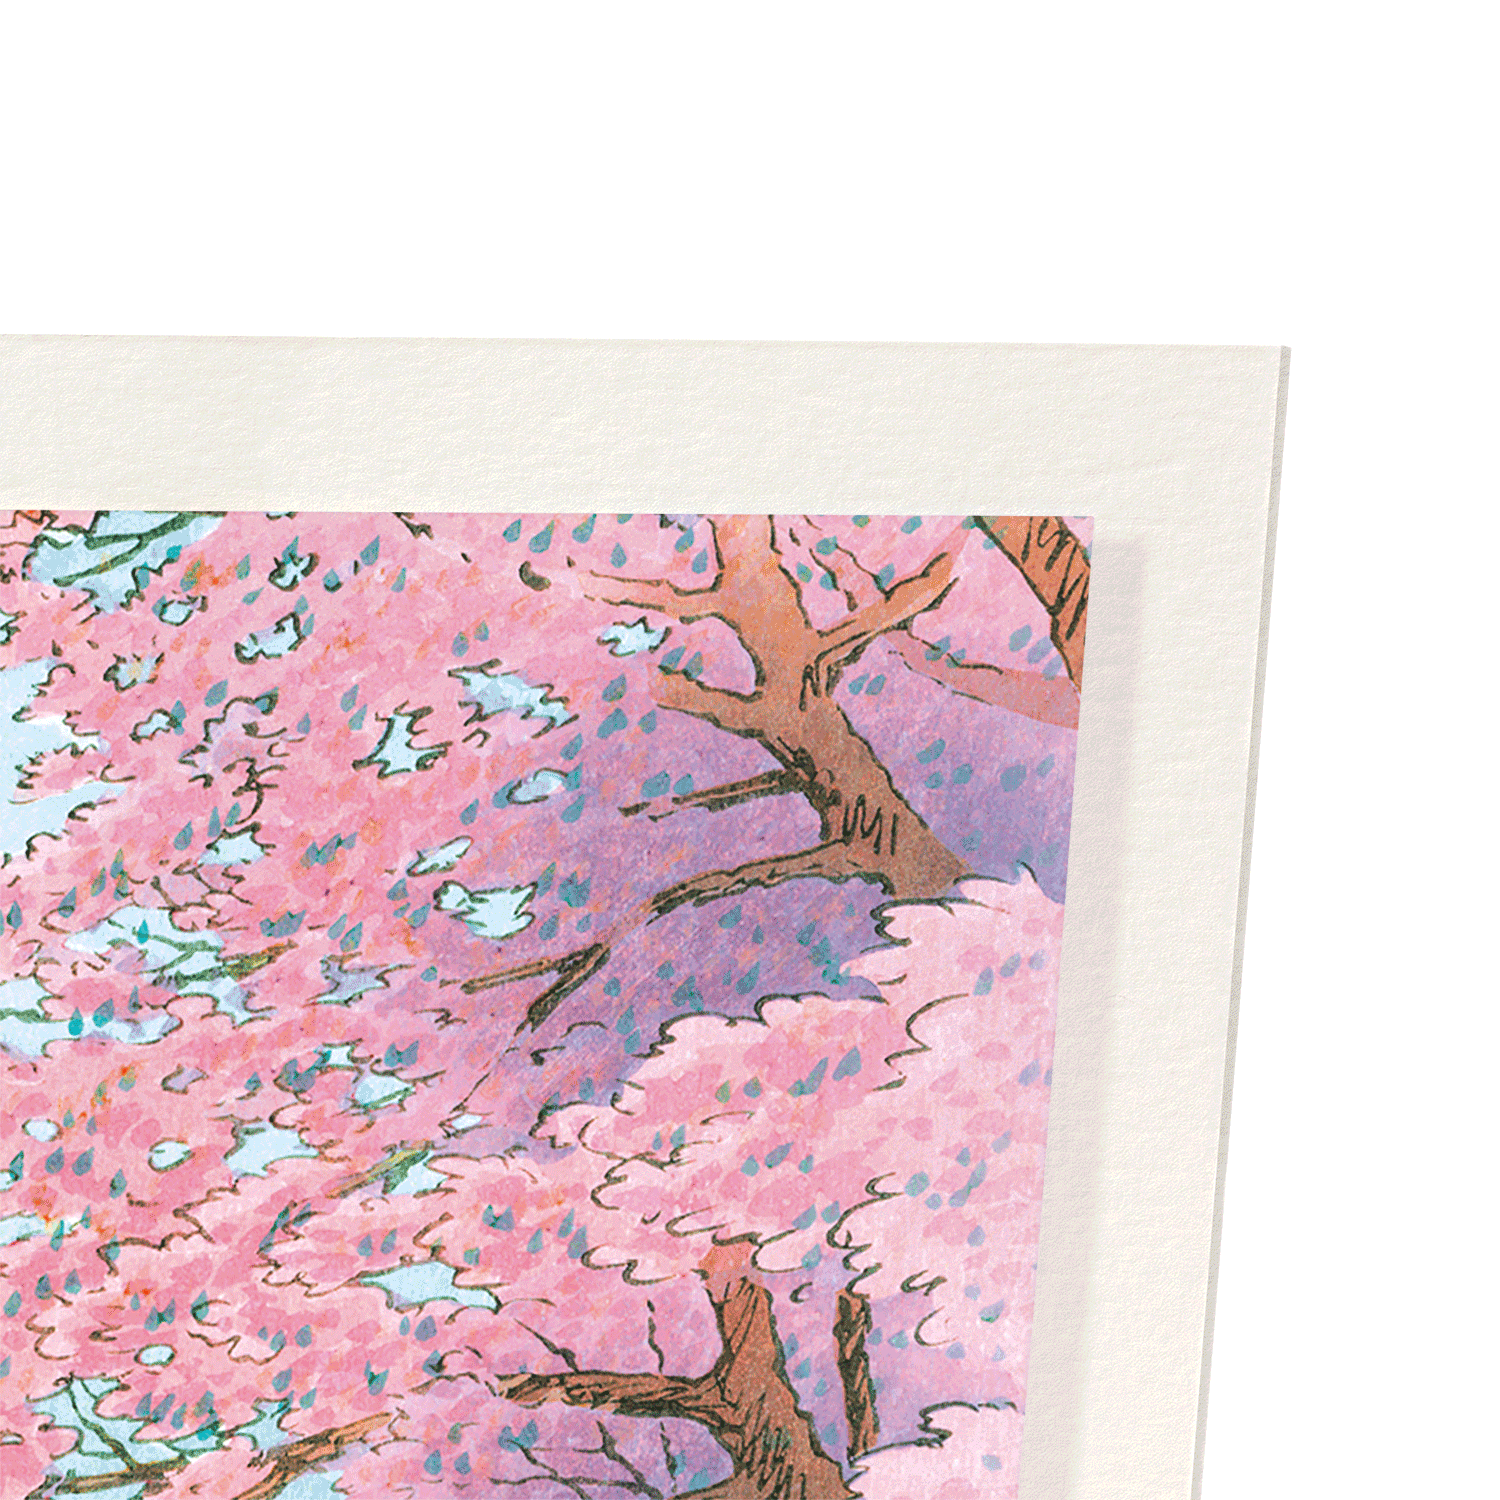 CASTLE AND CHERRY BLOSSOMS: 2xPrints